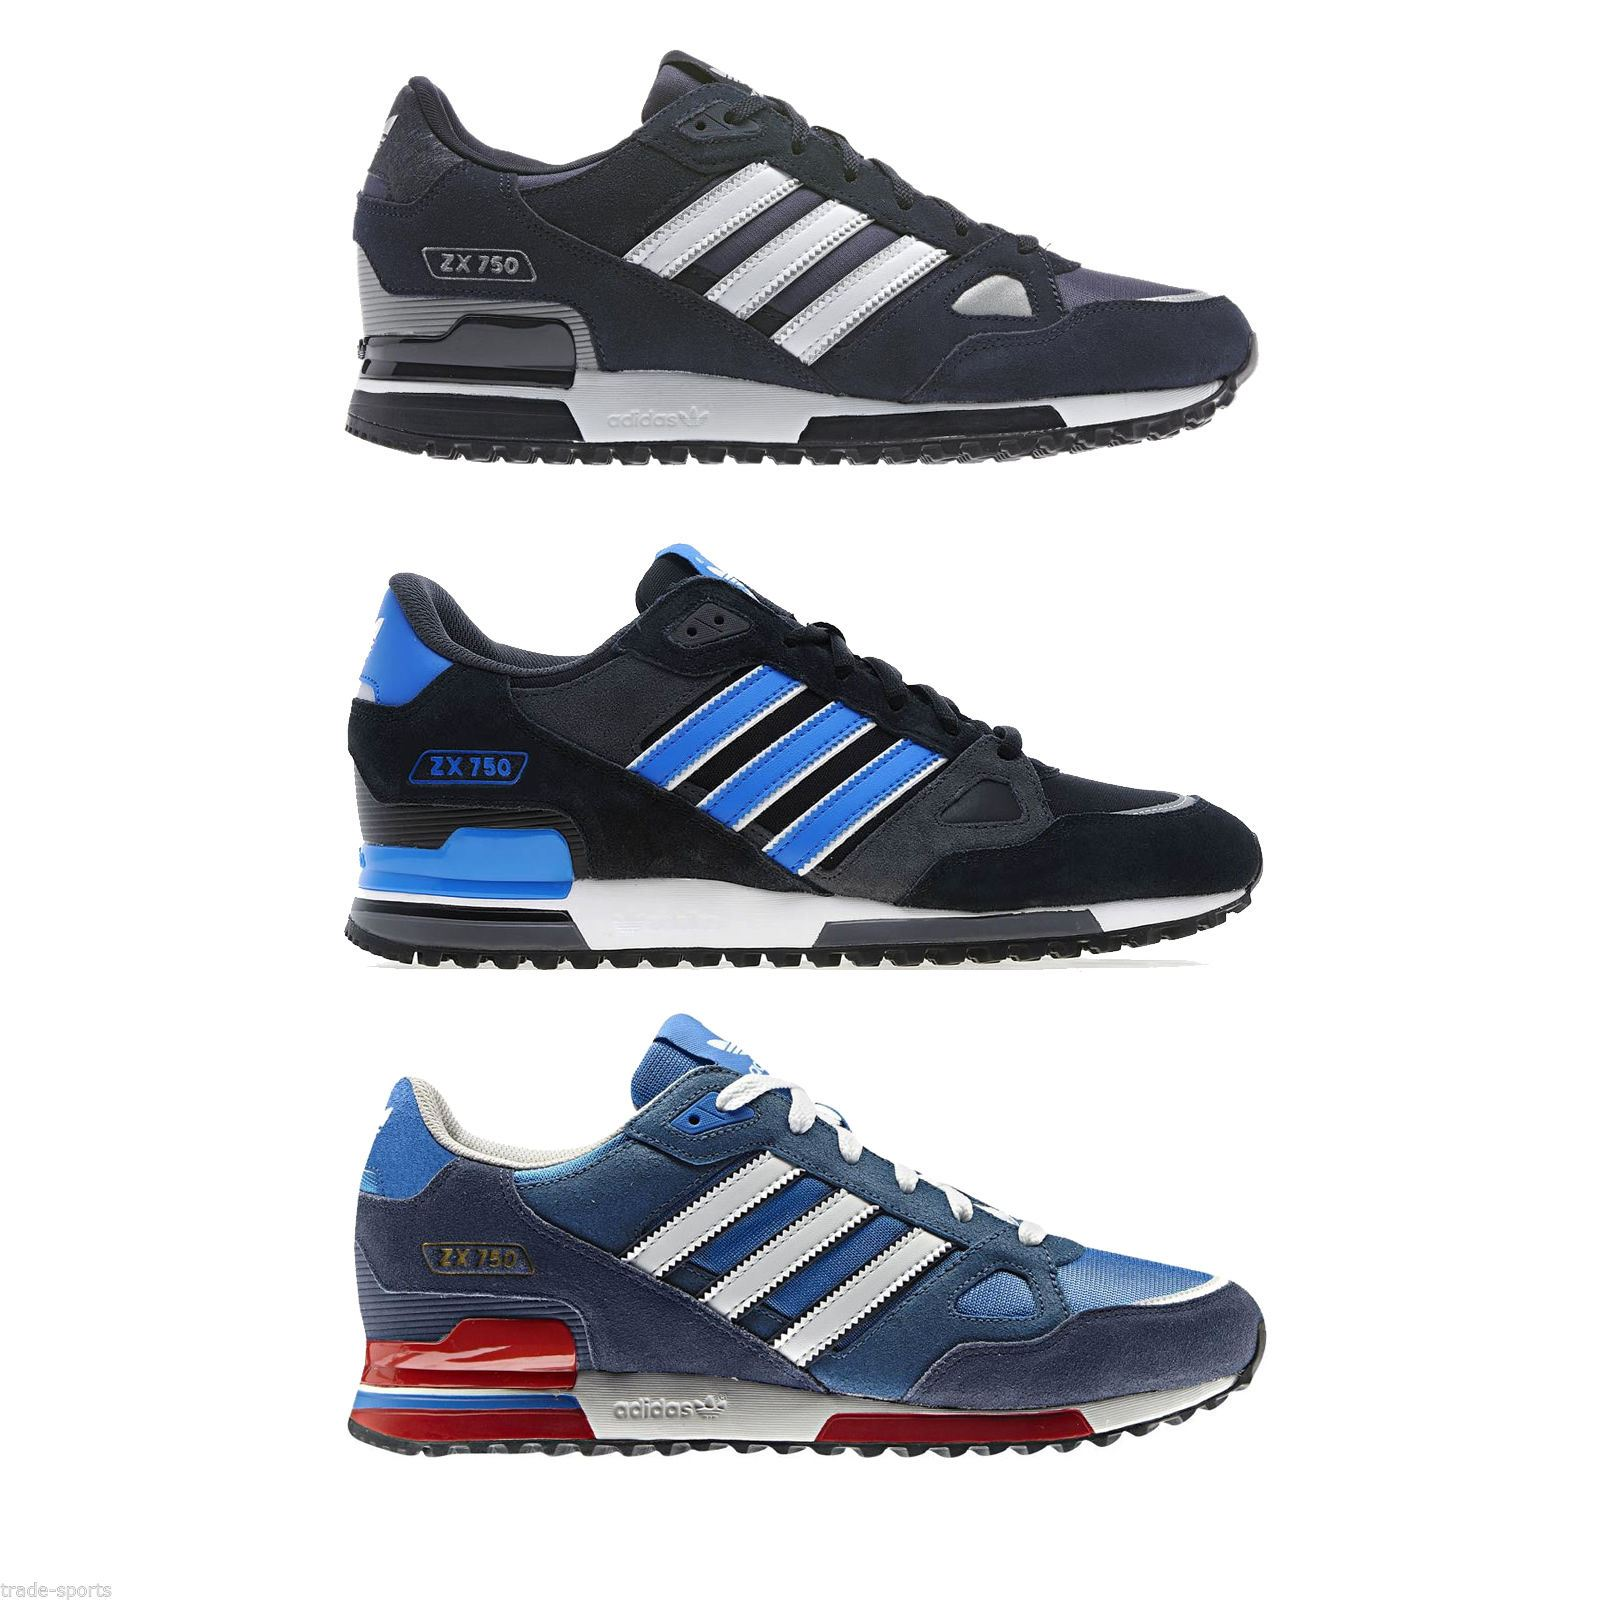 585d1591f Details about ADIDAS ORIGINALS ZX 750 MENS RUNNING TRAINERS BLUE BLACK NAVY  SNEAKERS SHOES NEW